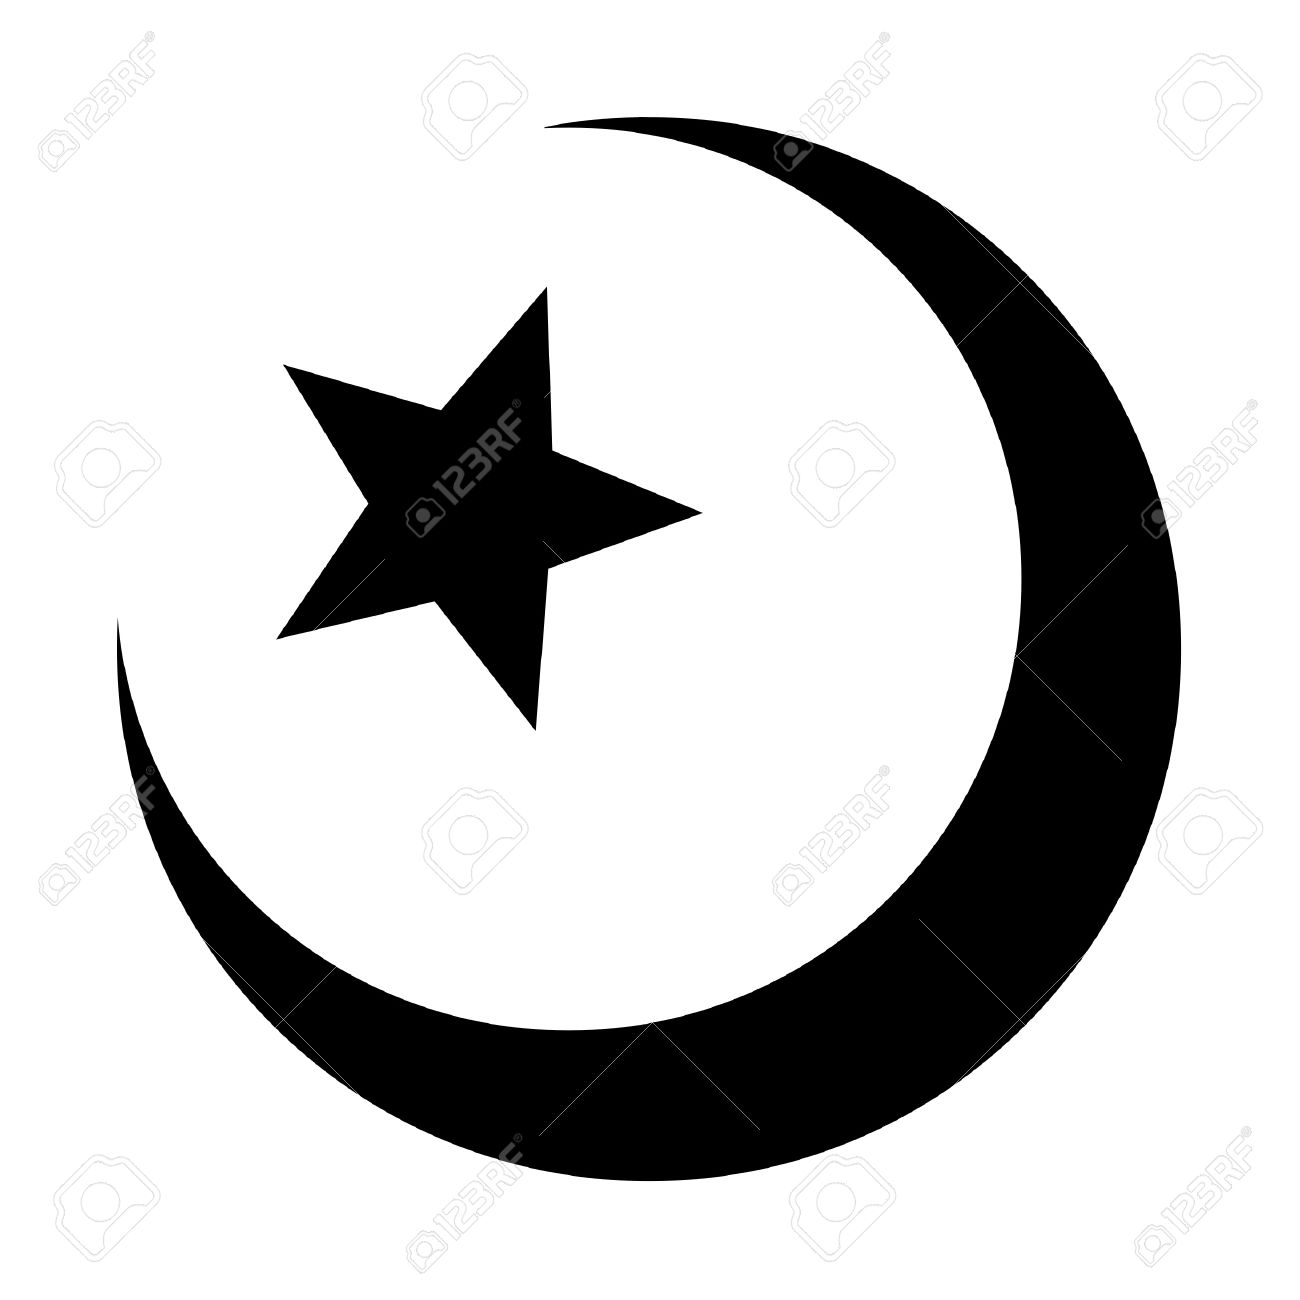 religious islamic star and crescent muslim sign isolated on a religious islamic star and crescent muslim sign isolated on a white background stock photo